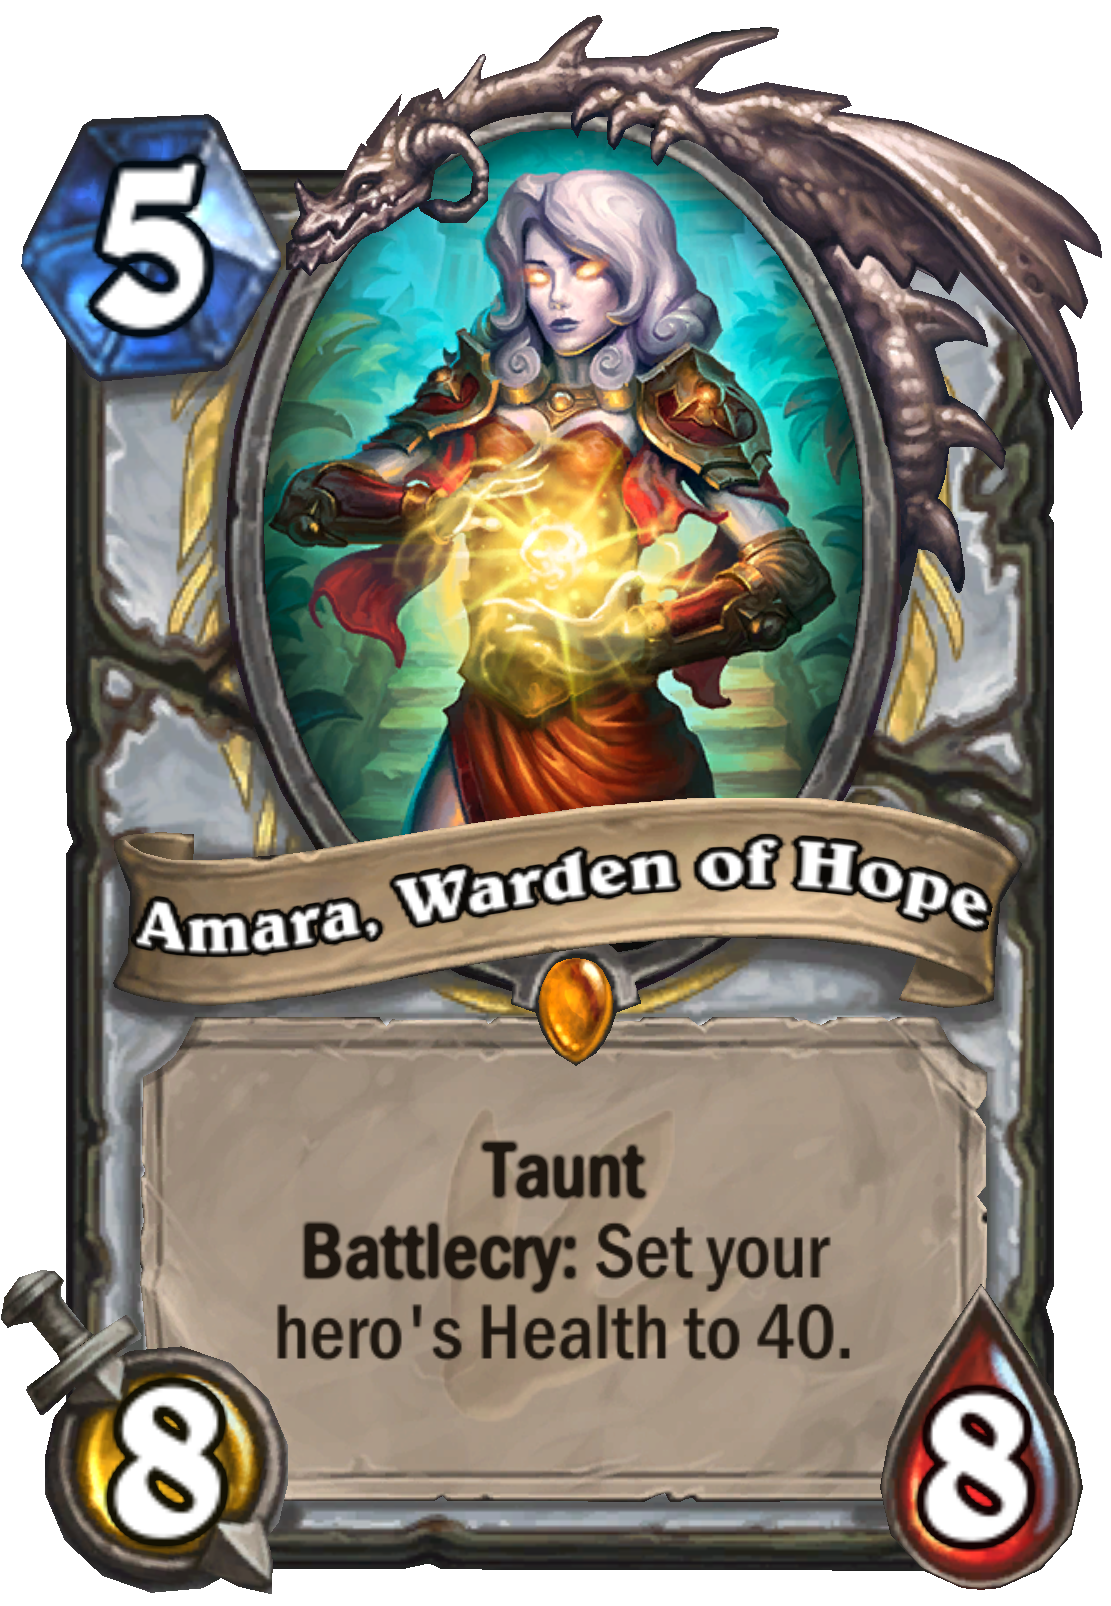 """This Hearthstone card is titled """"Amara, Warden of Hope."""" It costs 5 mana and has 8 attack and 8 health. The card text reads """"Taunt, Battlecry: Set your hero's Health to 40."""" The card picture features a woman with pale white skin and red armor. Her hands a"""